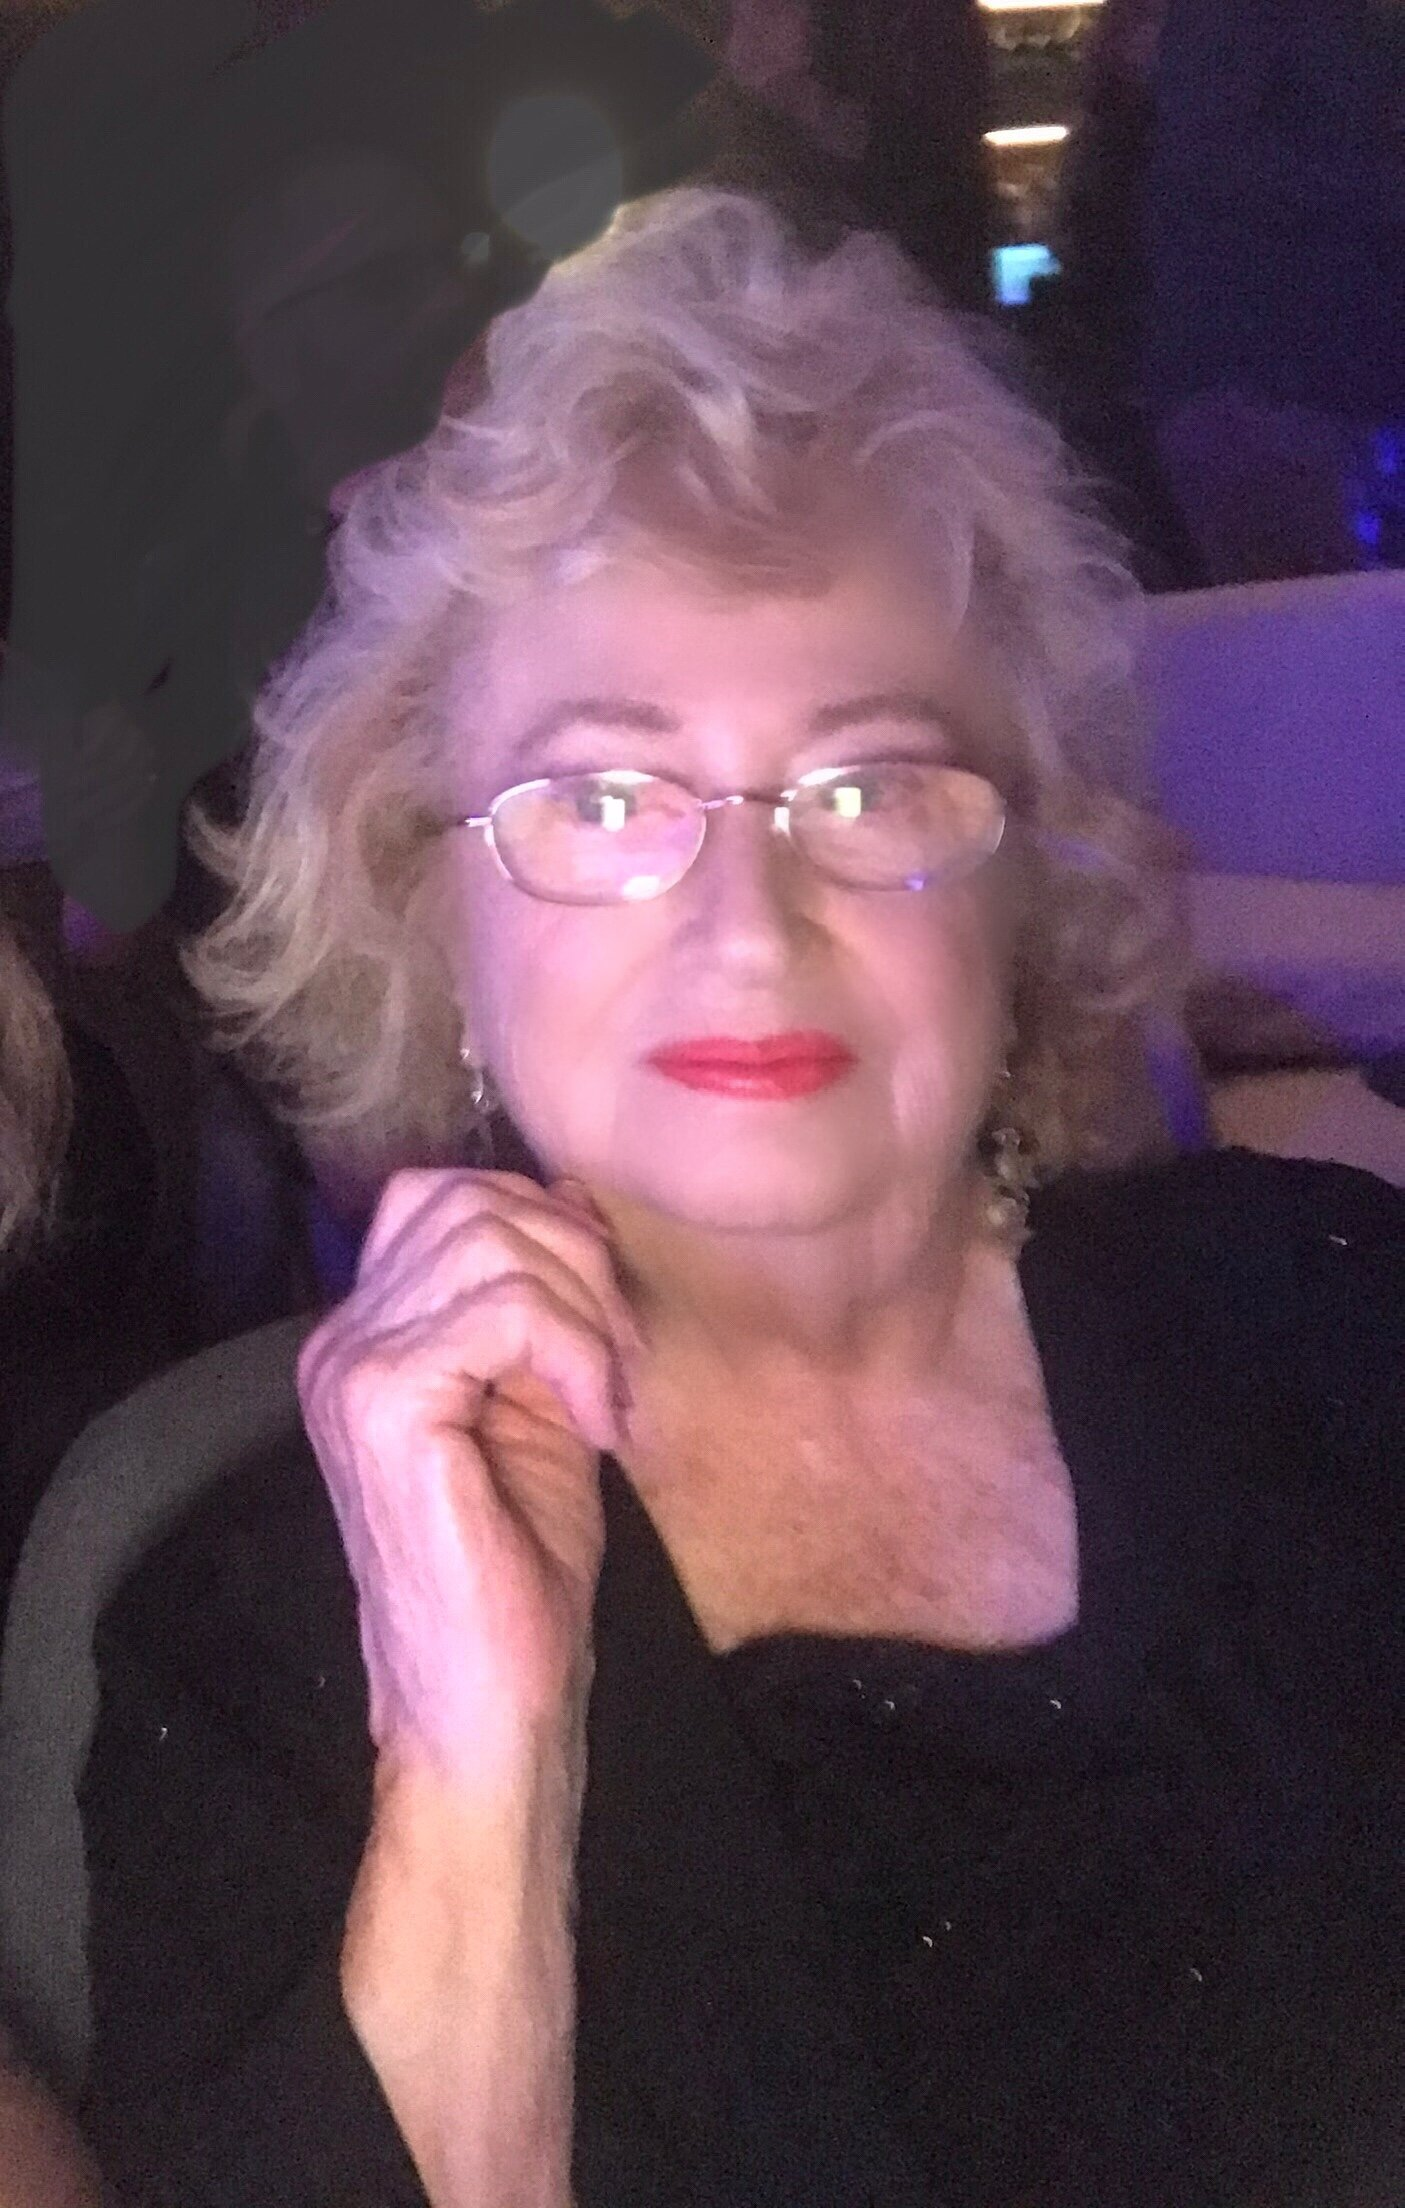 In loving memory of - Barbara (Bubbles) KulbaMay 18, 1929 - July 20, 2020RSVP for Virtual Celebration of Lifeto be held August 2, 2020 at 6:00 PM EDTWatch Video Recording of Celebration of LifeView or Download Memorial Card